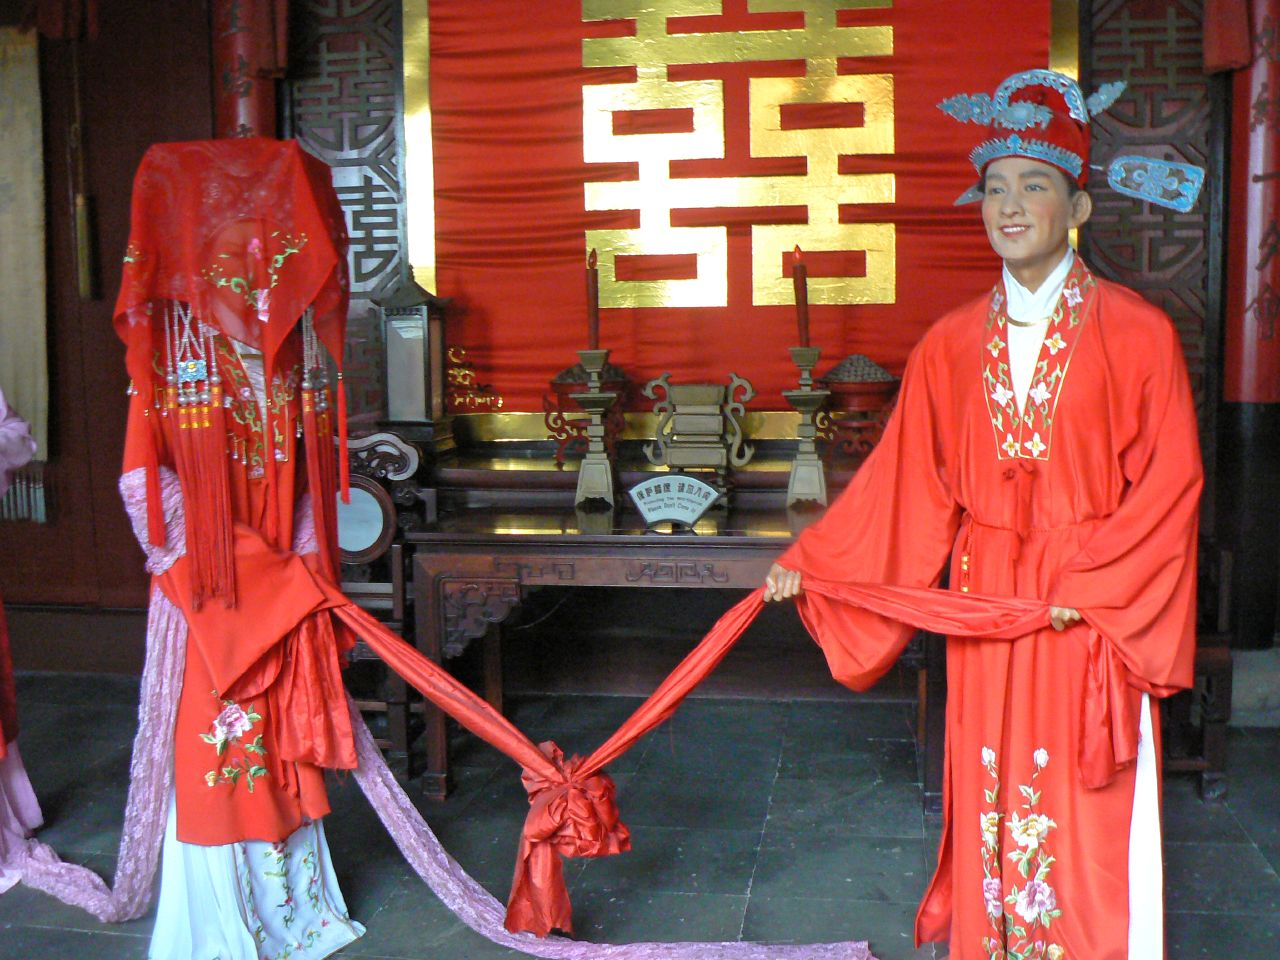 On hearing this, Emperor Guangwu aborted the idea of tying the knot between Princess Huyang and Song Hong. (Image: Ben Burkland Carolyn Cook via flickr CC BY 2.0 )